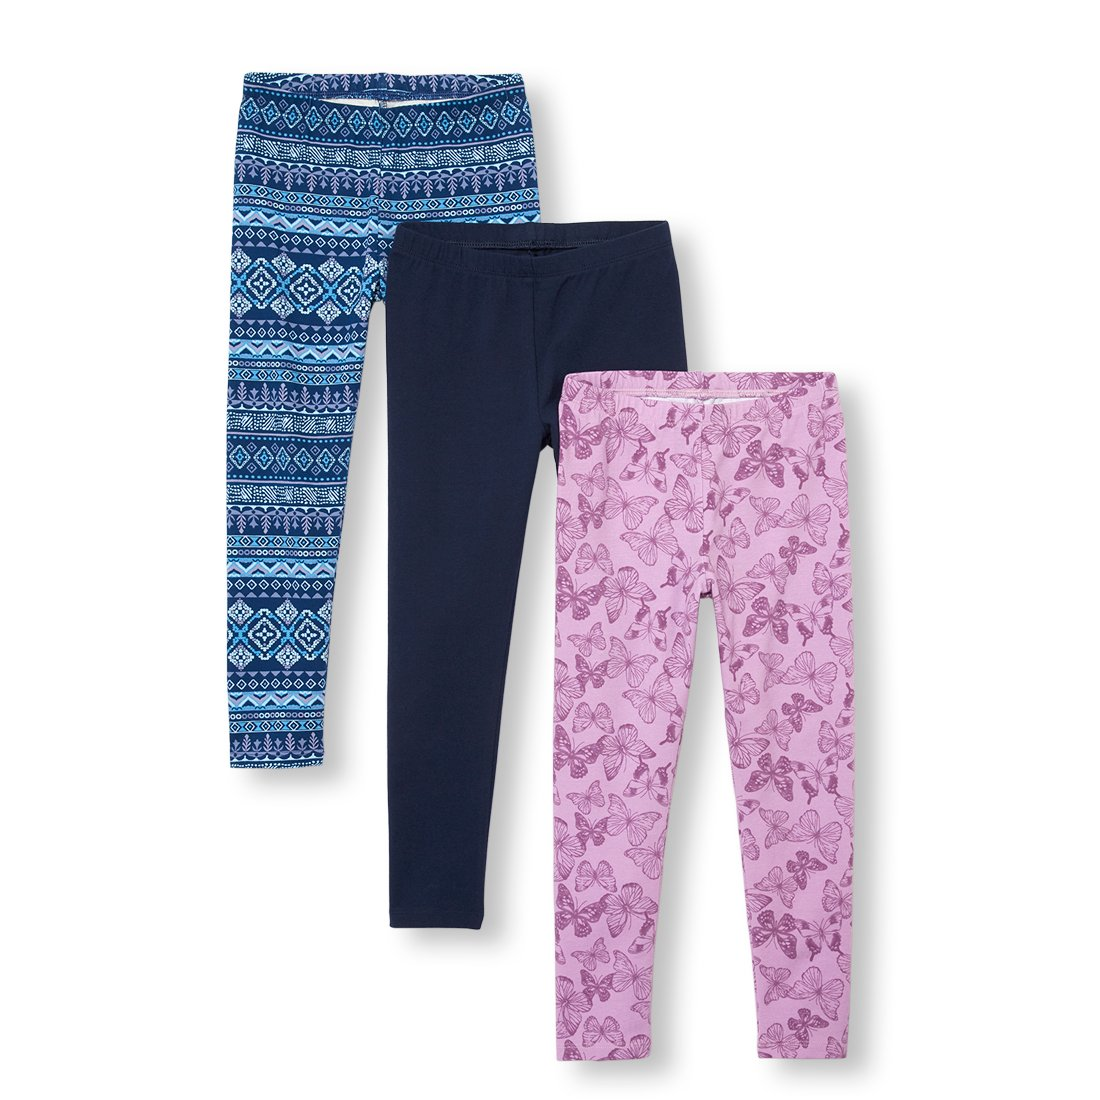 The Children's Place Big Girls' 3 Pack Legging, Milky Way, L (10/12)